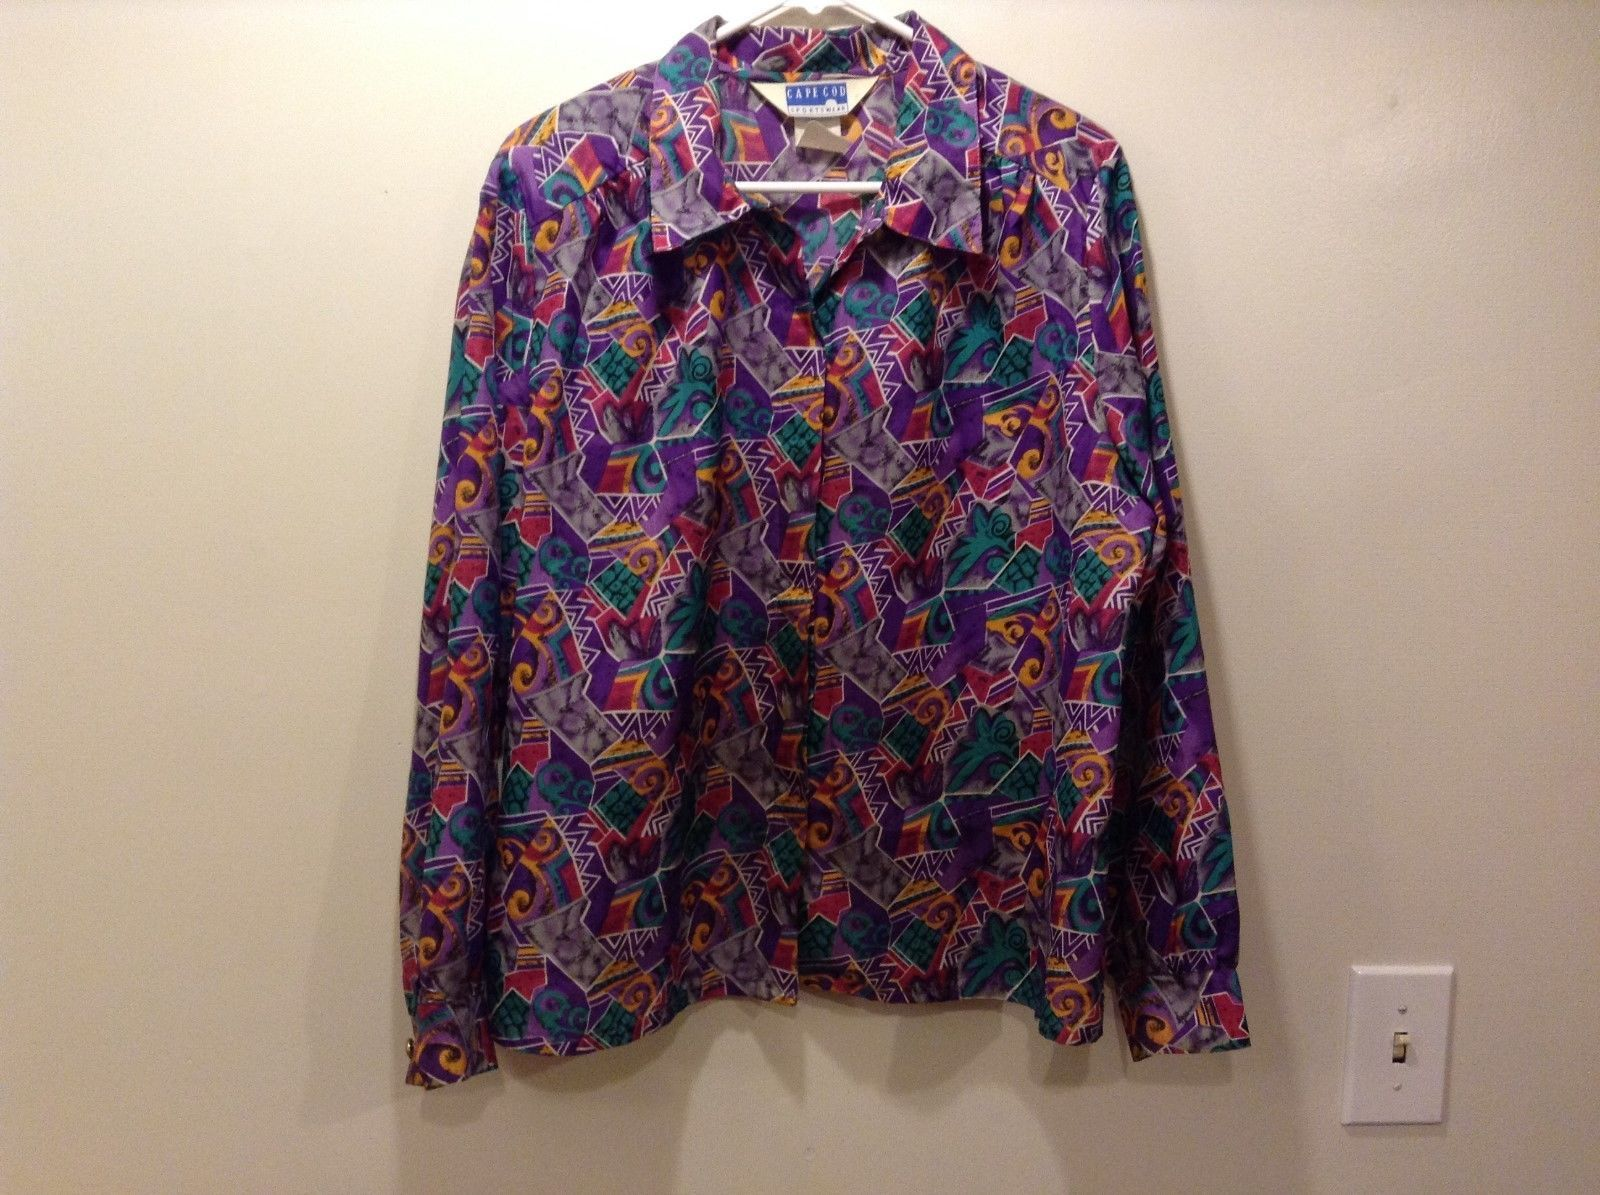 Cape Cod Sportswear Ladies Multicolor Lightweight Long Slv Collared Shirt Sz 18